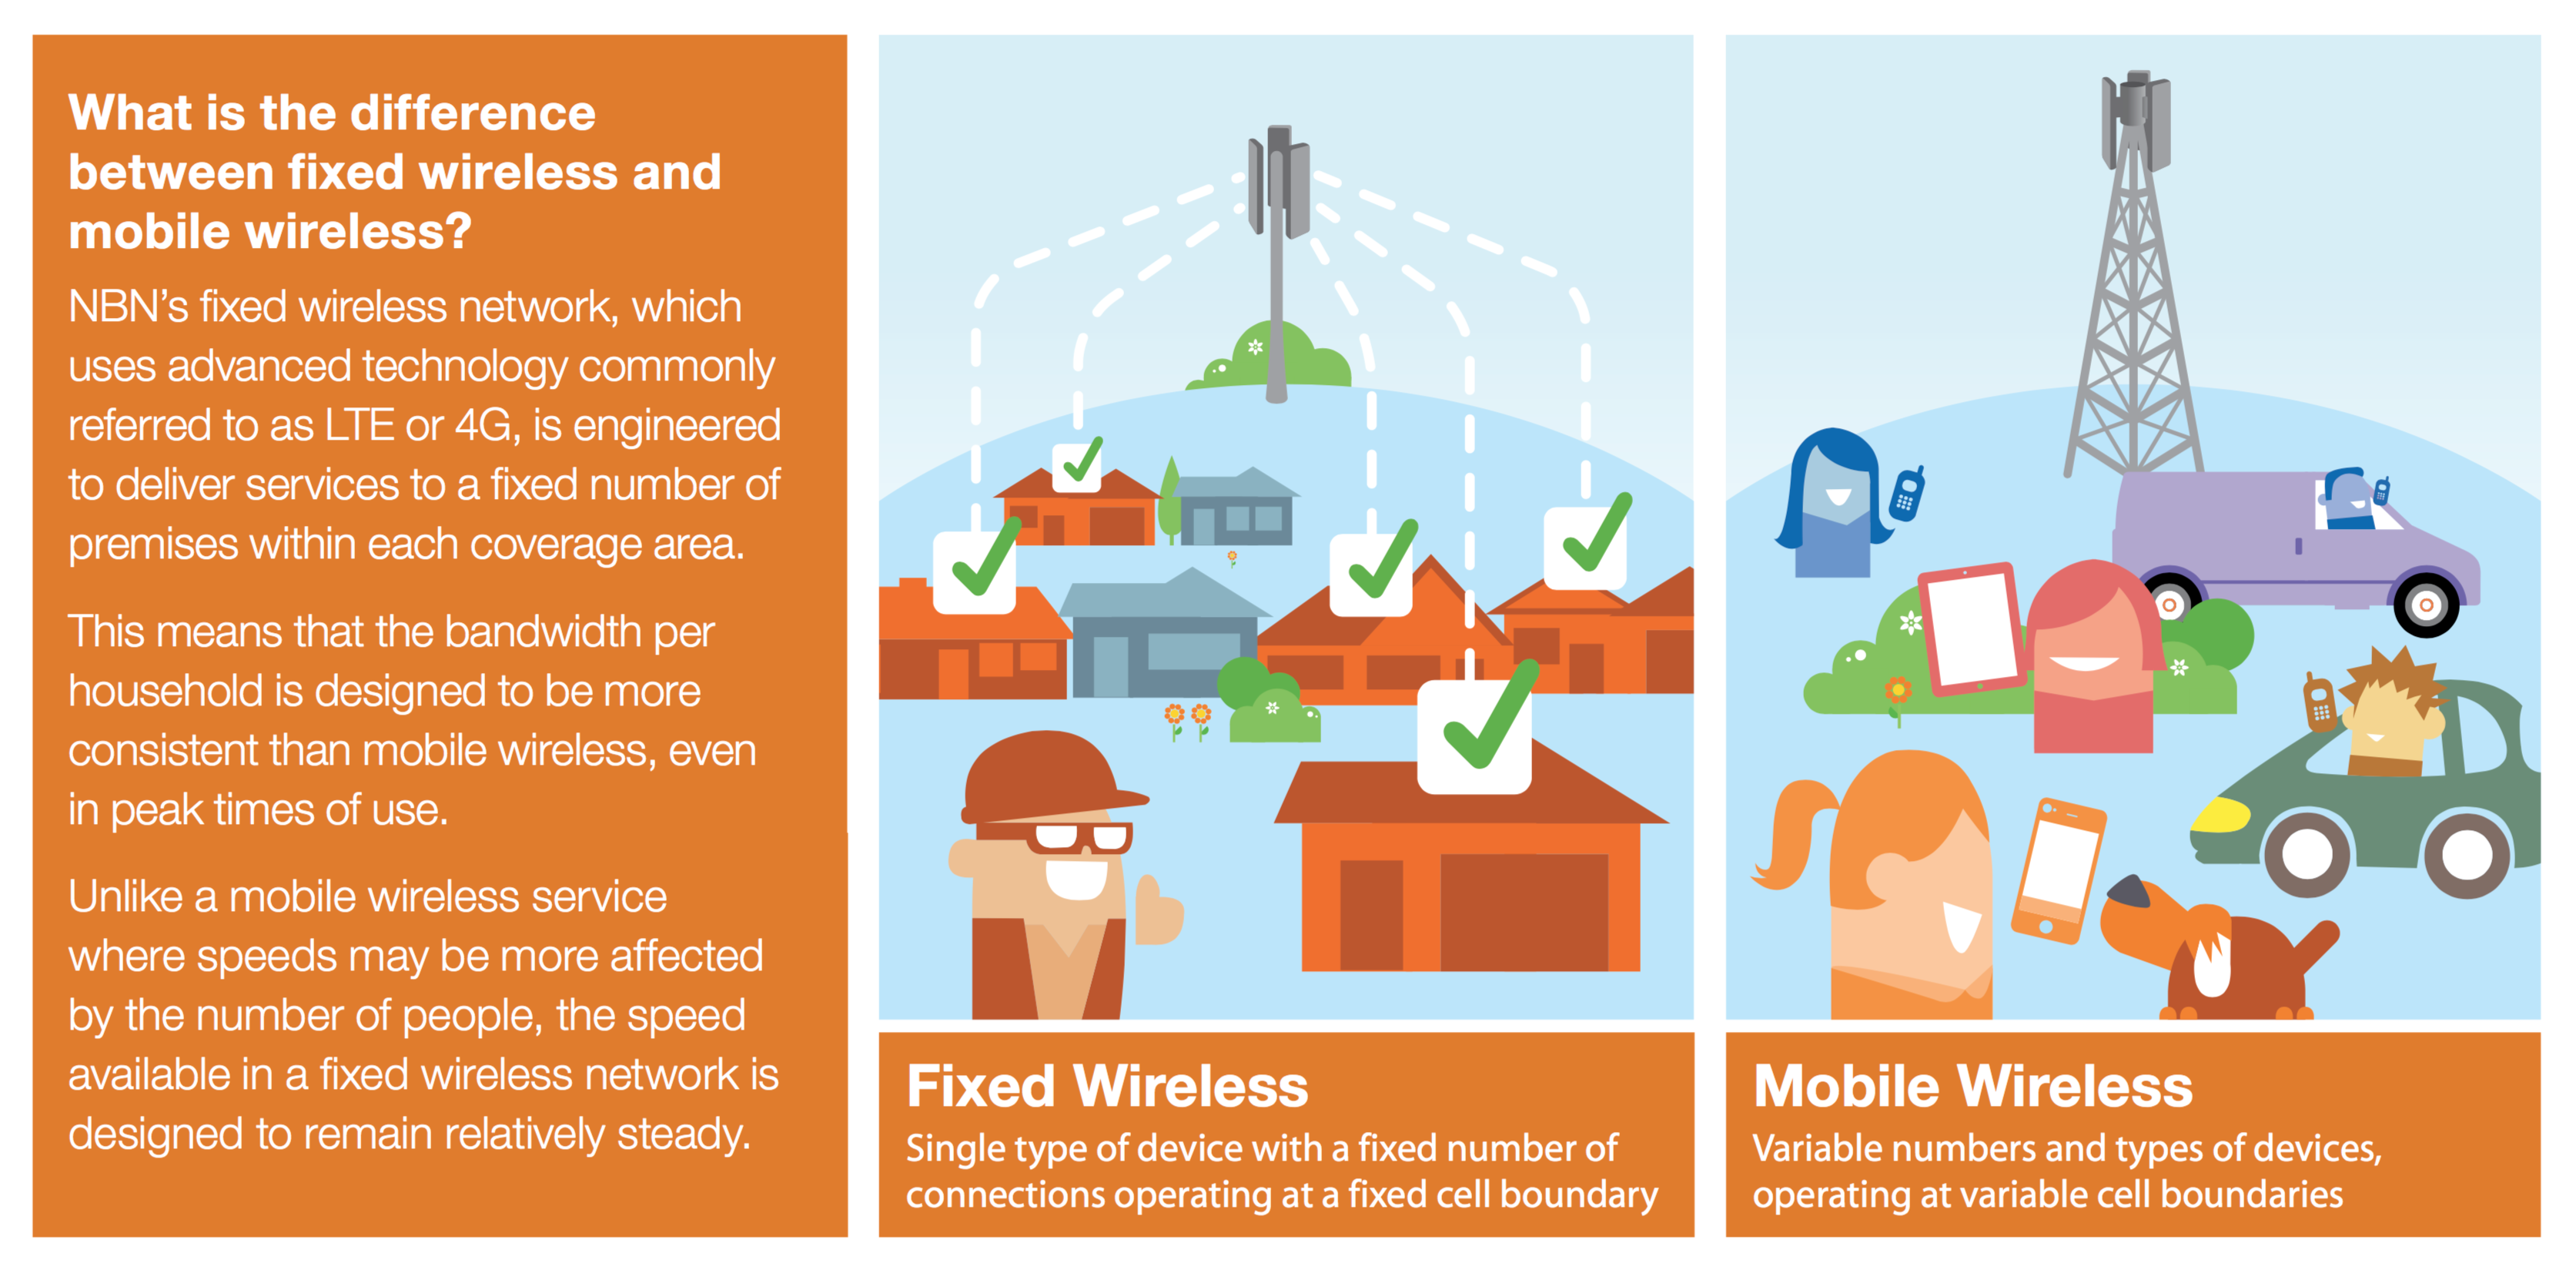 Chart showing the difference between fixed wireless and mobile broadband